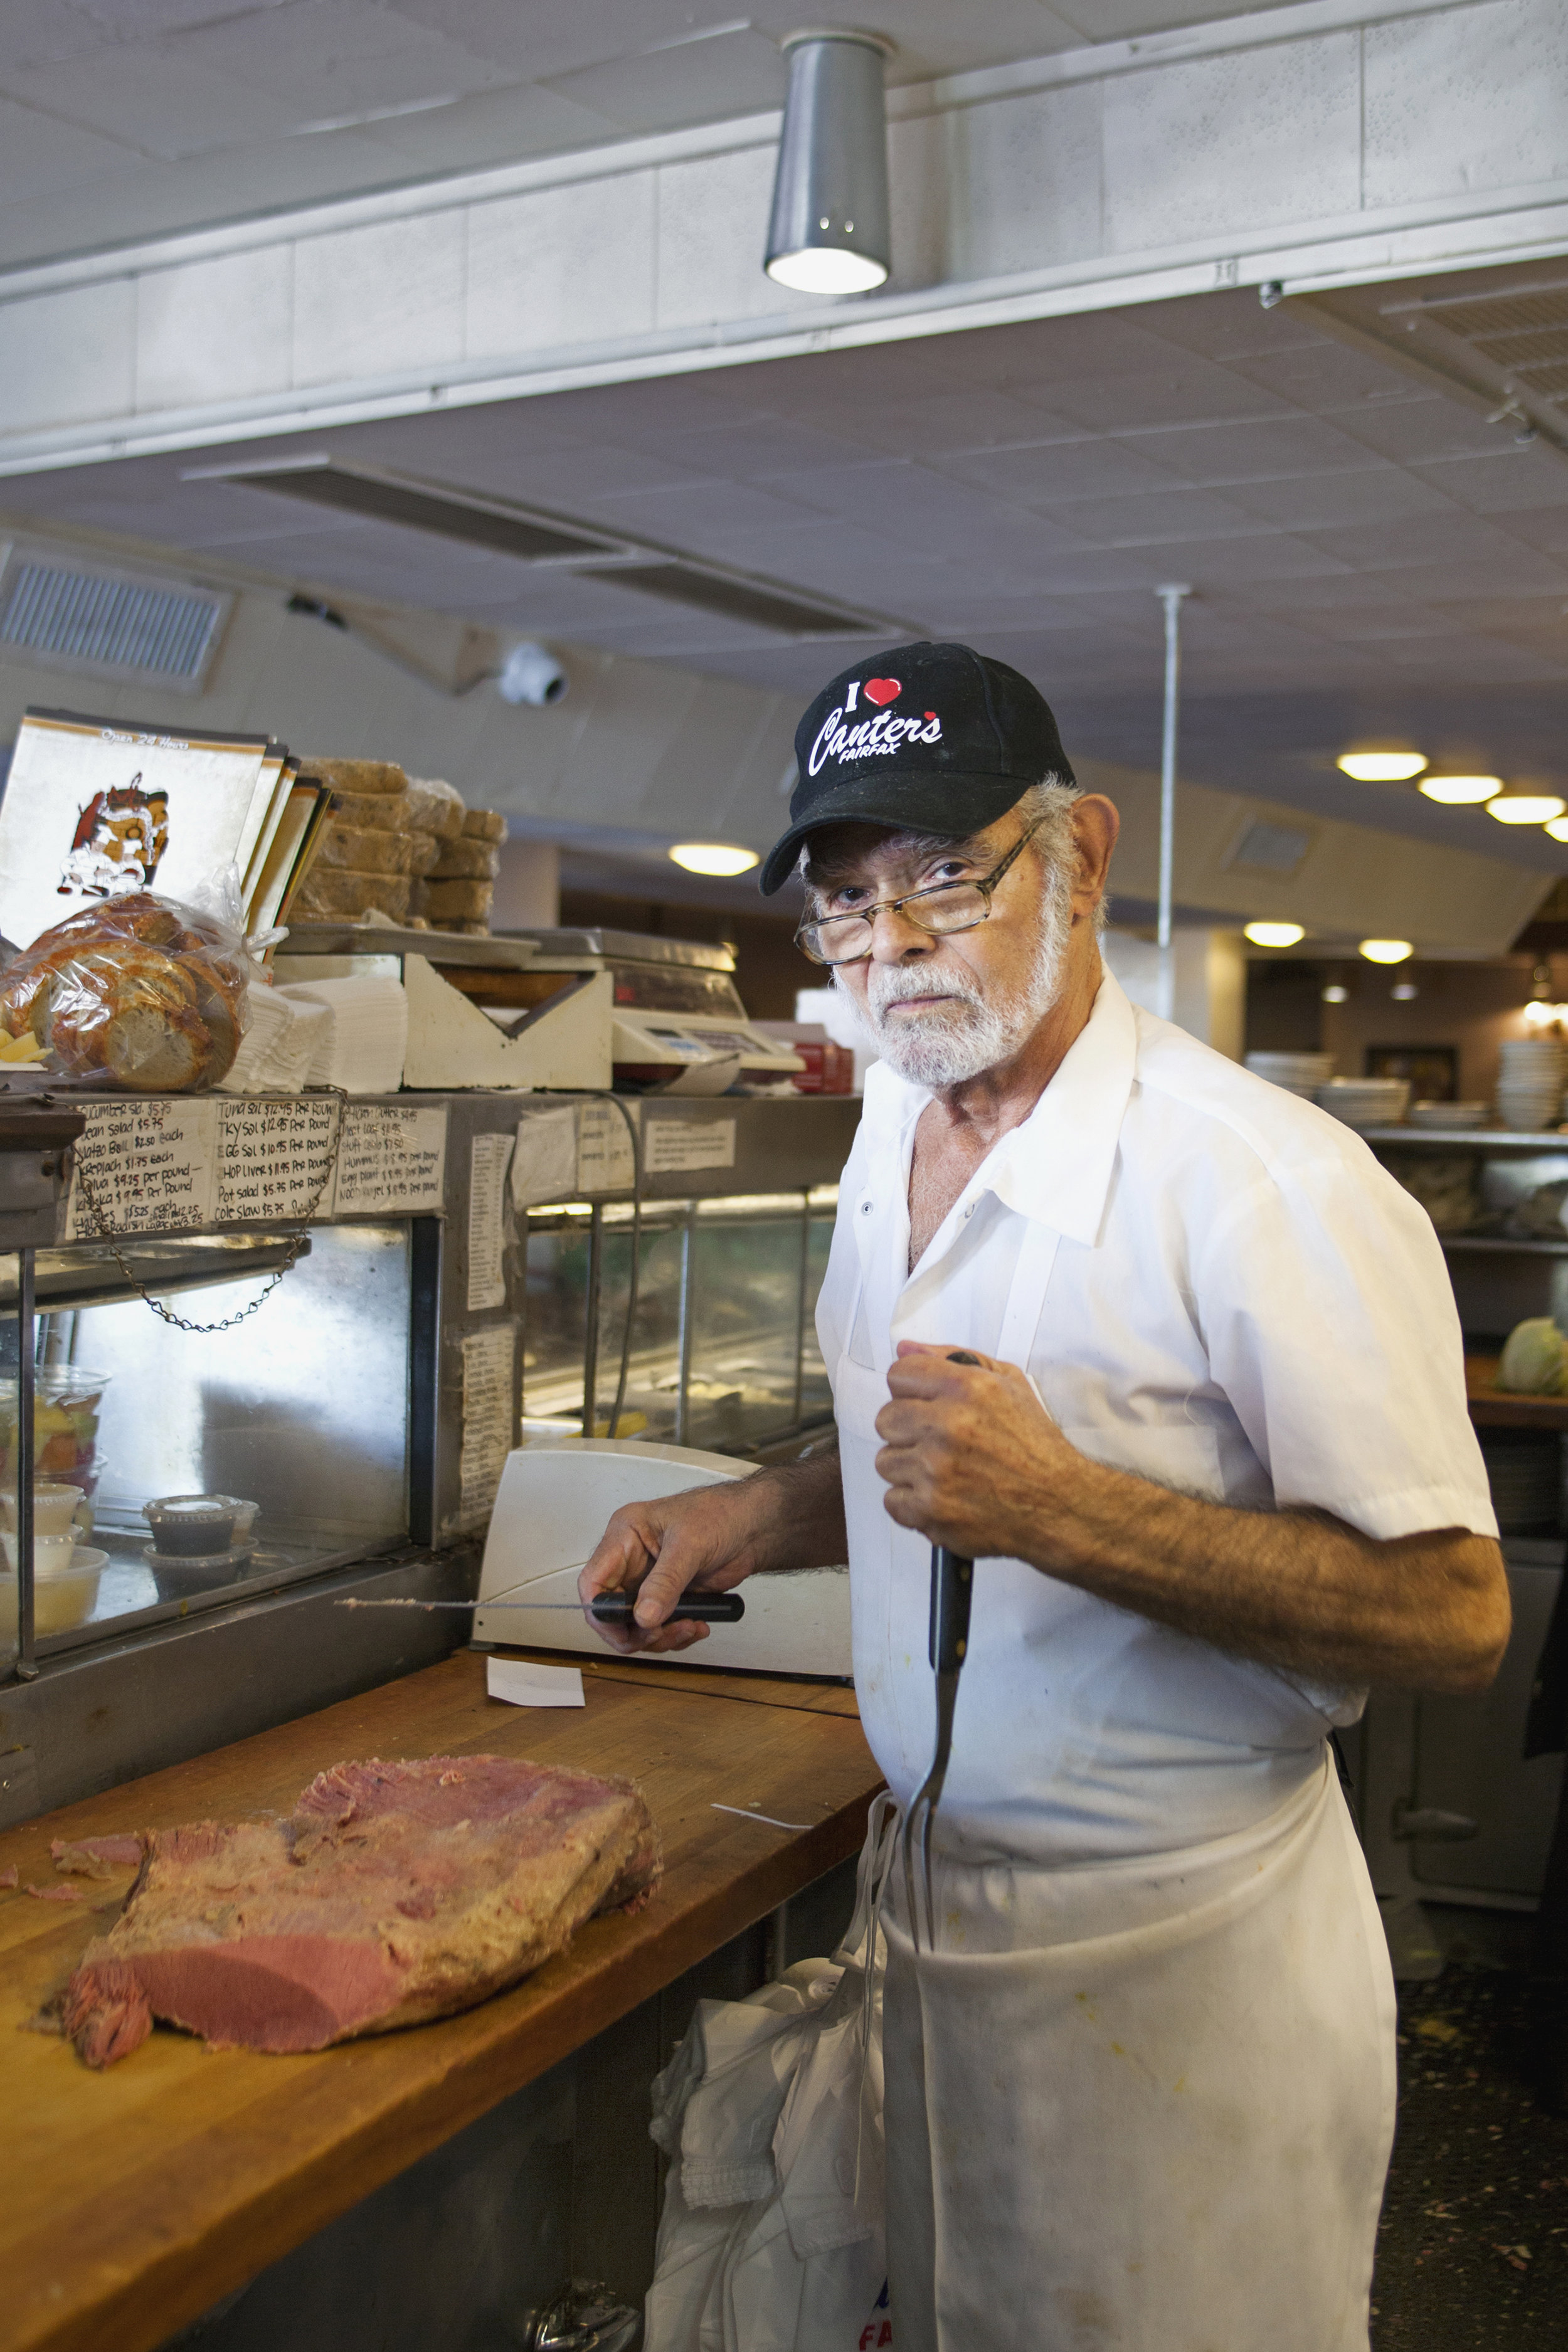 """GeorgeKarkabasis - George Karkabasis, 75, started working at Canter's in 1964. """"I've been with them for 50 years, they are my life."""" Amazingly, Karkabasis says he still feels like he is 19-years-old. """"You deal with the people, you deal with the public, you keep your mind working, your body active, that's what keeps you going."""""""